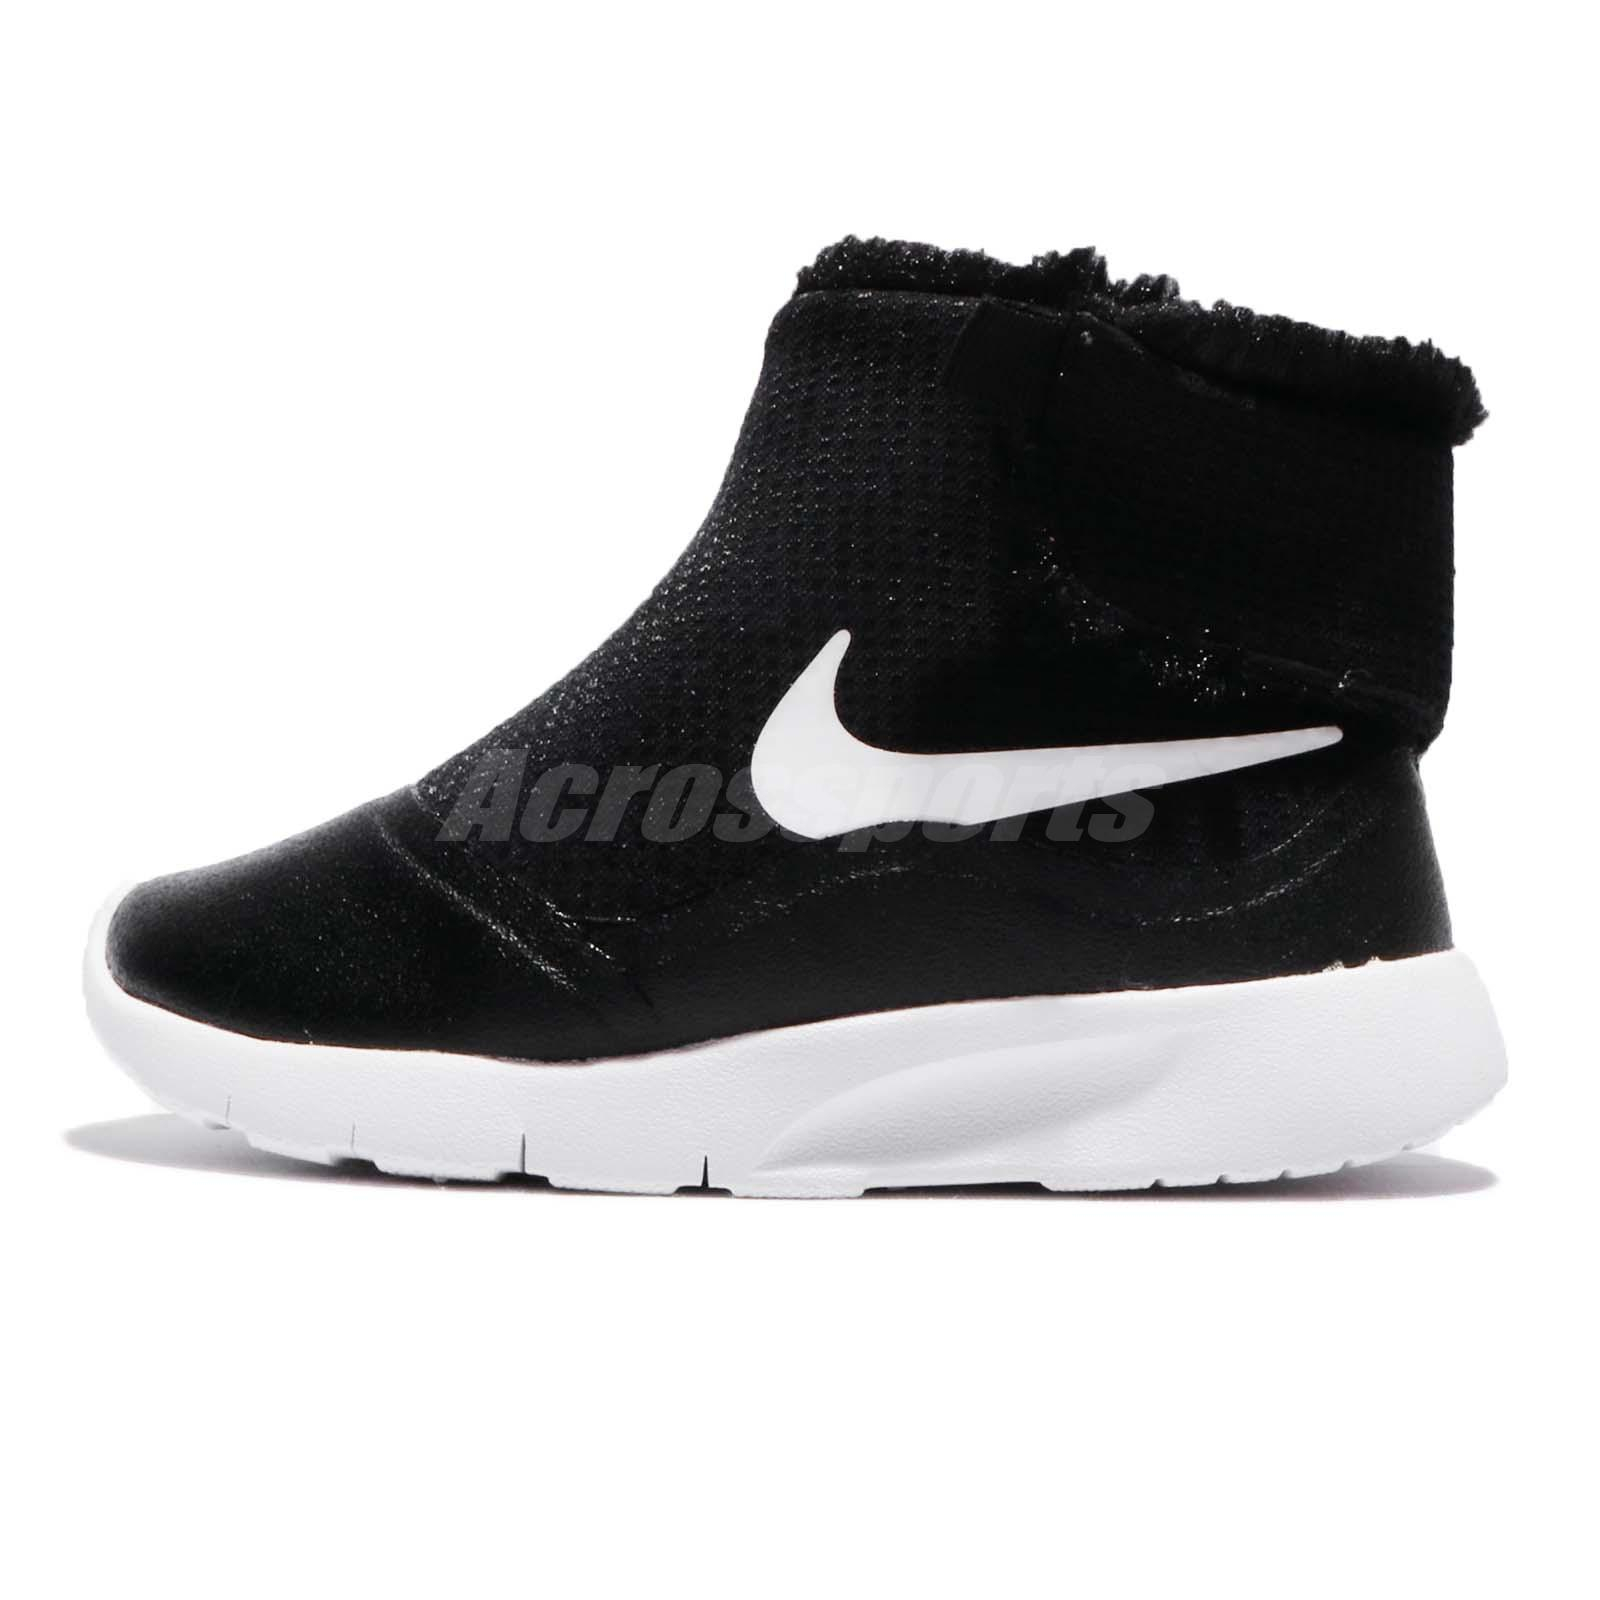 sports shoes 89a45 8fb35 ... canada nike tanjun hi tdv black white infant baby toddler boots sneakers  922870 005 57da3 092bf